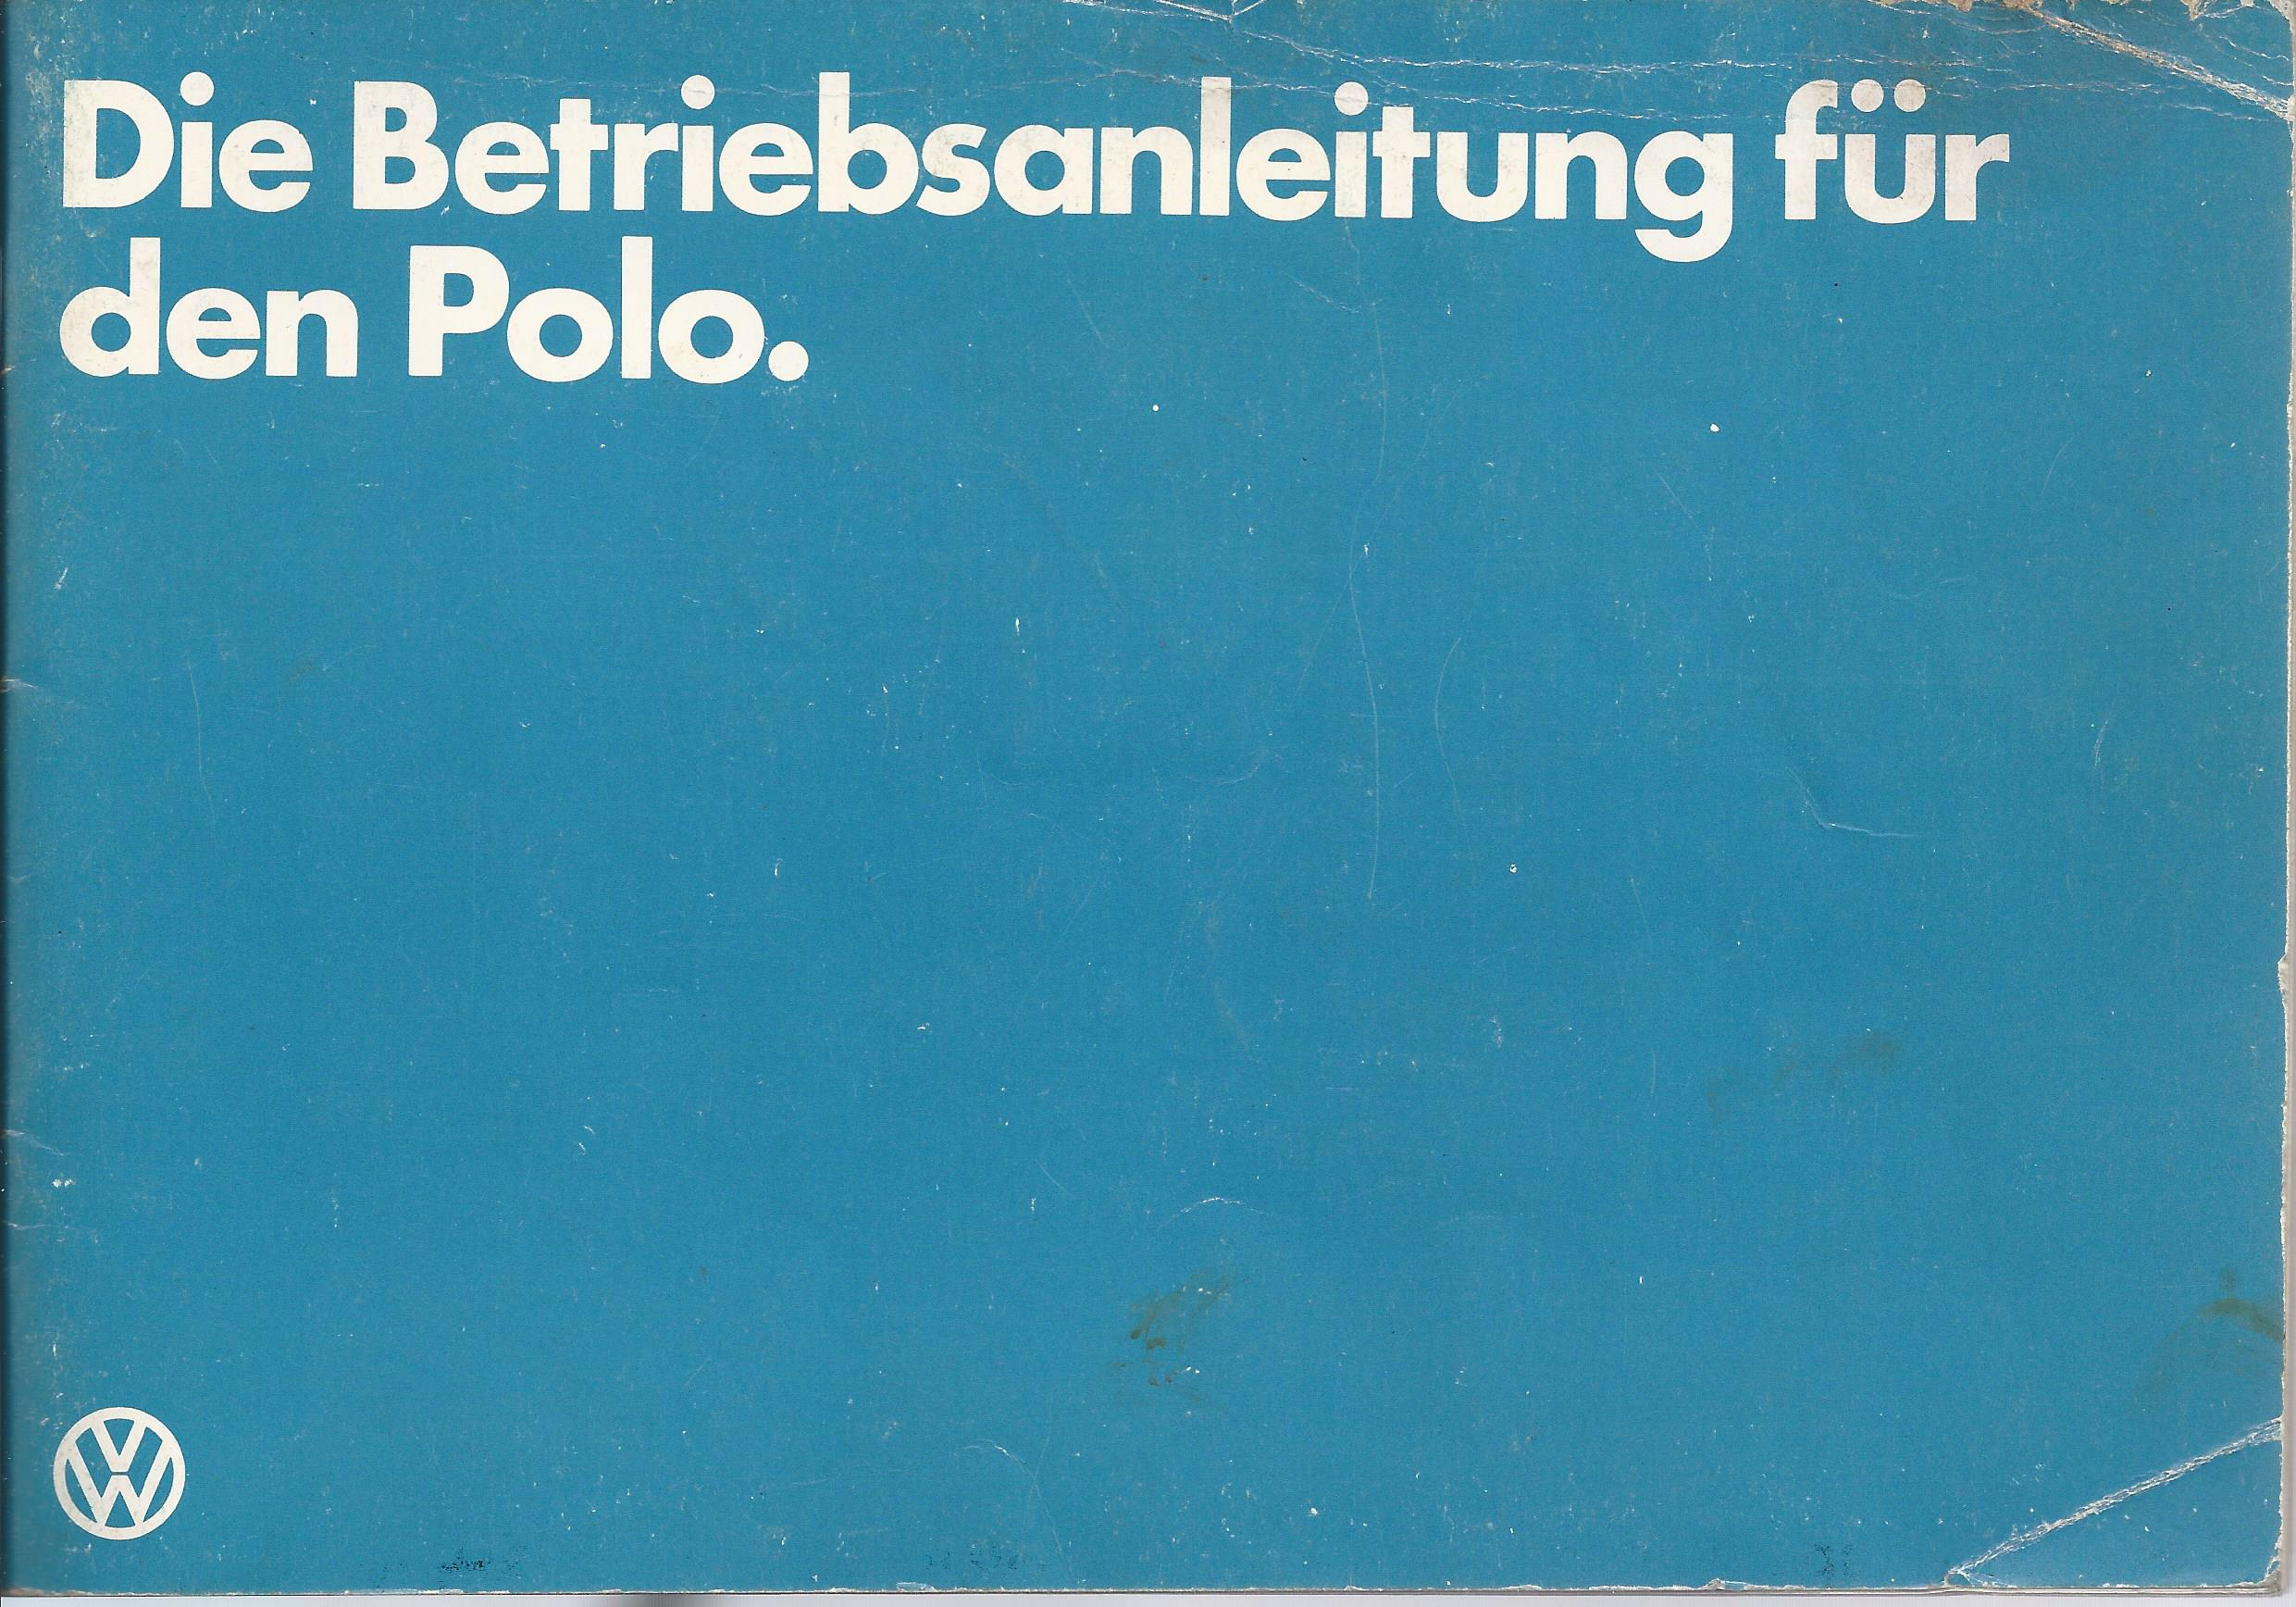 vw polo 2 betriebsanleitung 1981 bedienungsanleitung handbuch bordbuch ba ebay. Black Bedroom Furniture Sets. Home Design Ideas